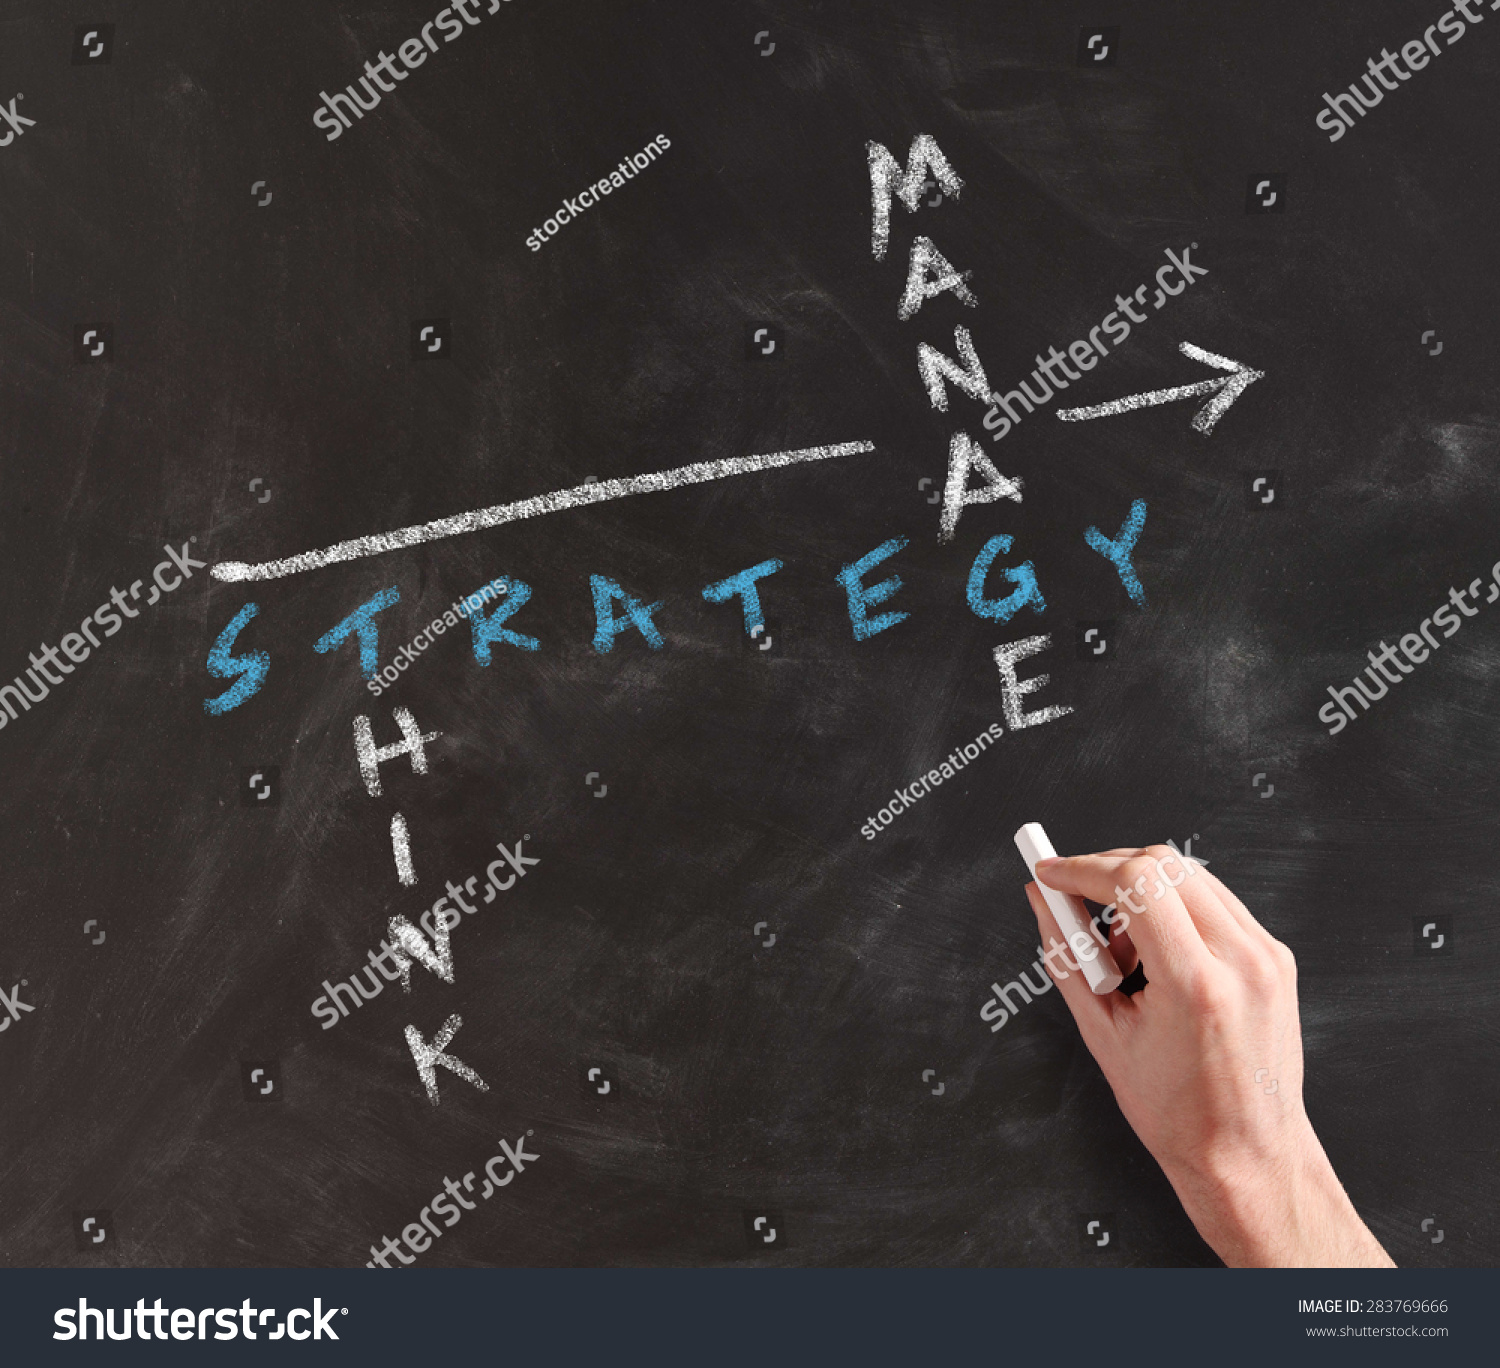 formulating strategy Strategic formulation at business level strategy : strategic formulation at business level strategy definition: business level strategy is an integrated and coordinated set of commitments and actions the firm uses to gain a competitive advantage by exploiting core competencies in specific product markets.